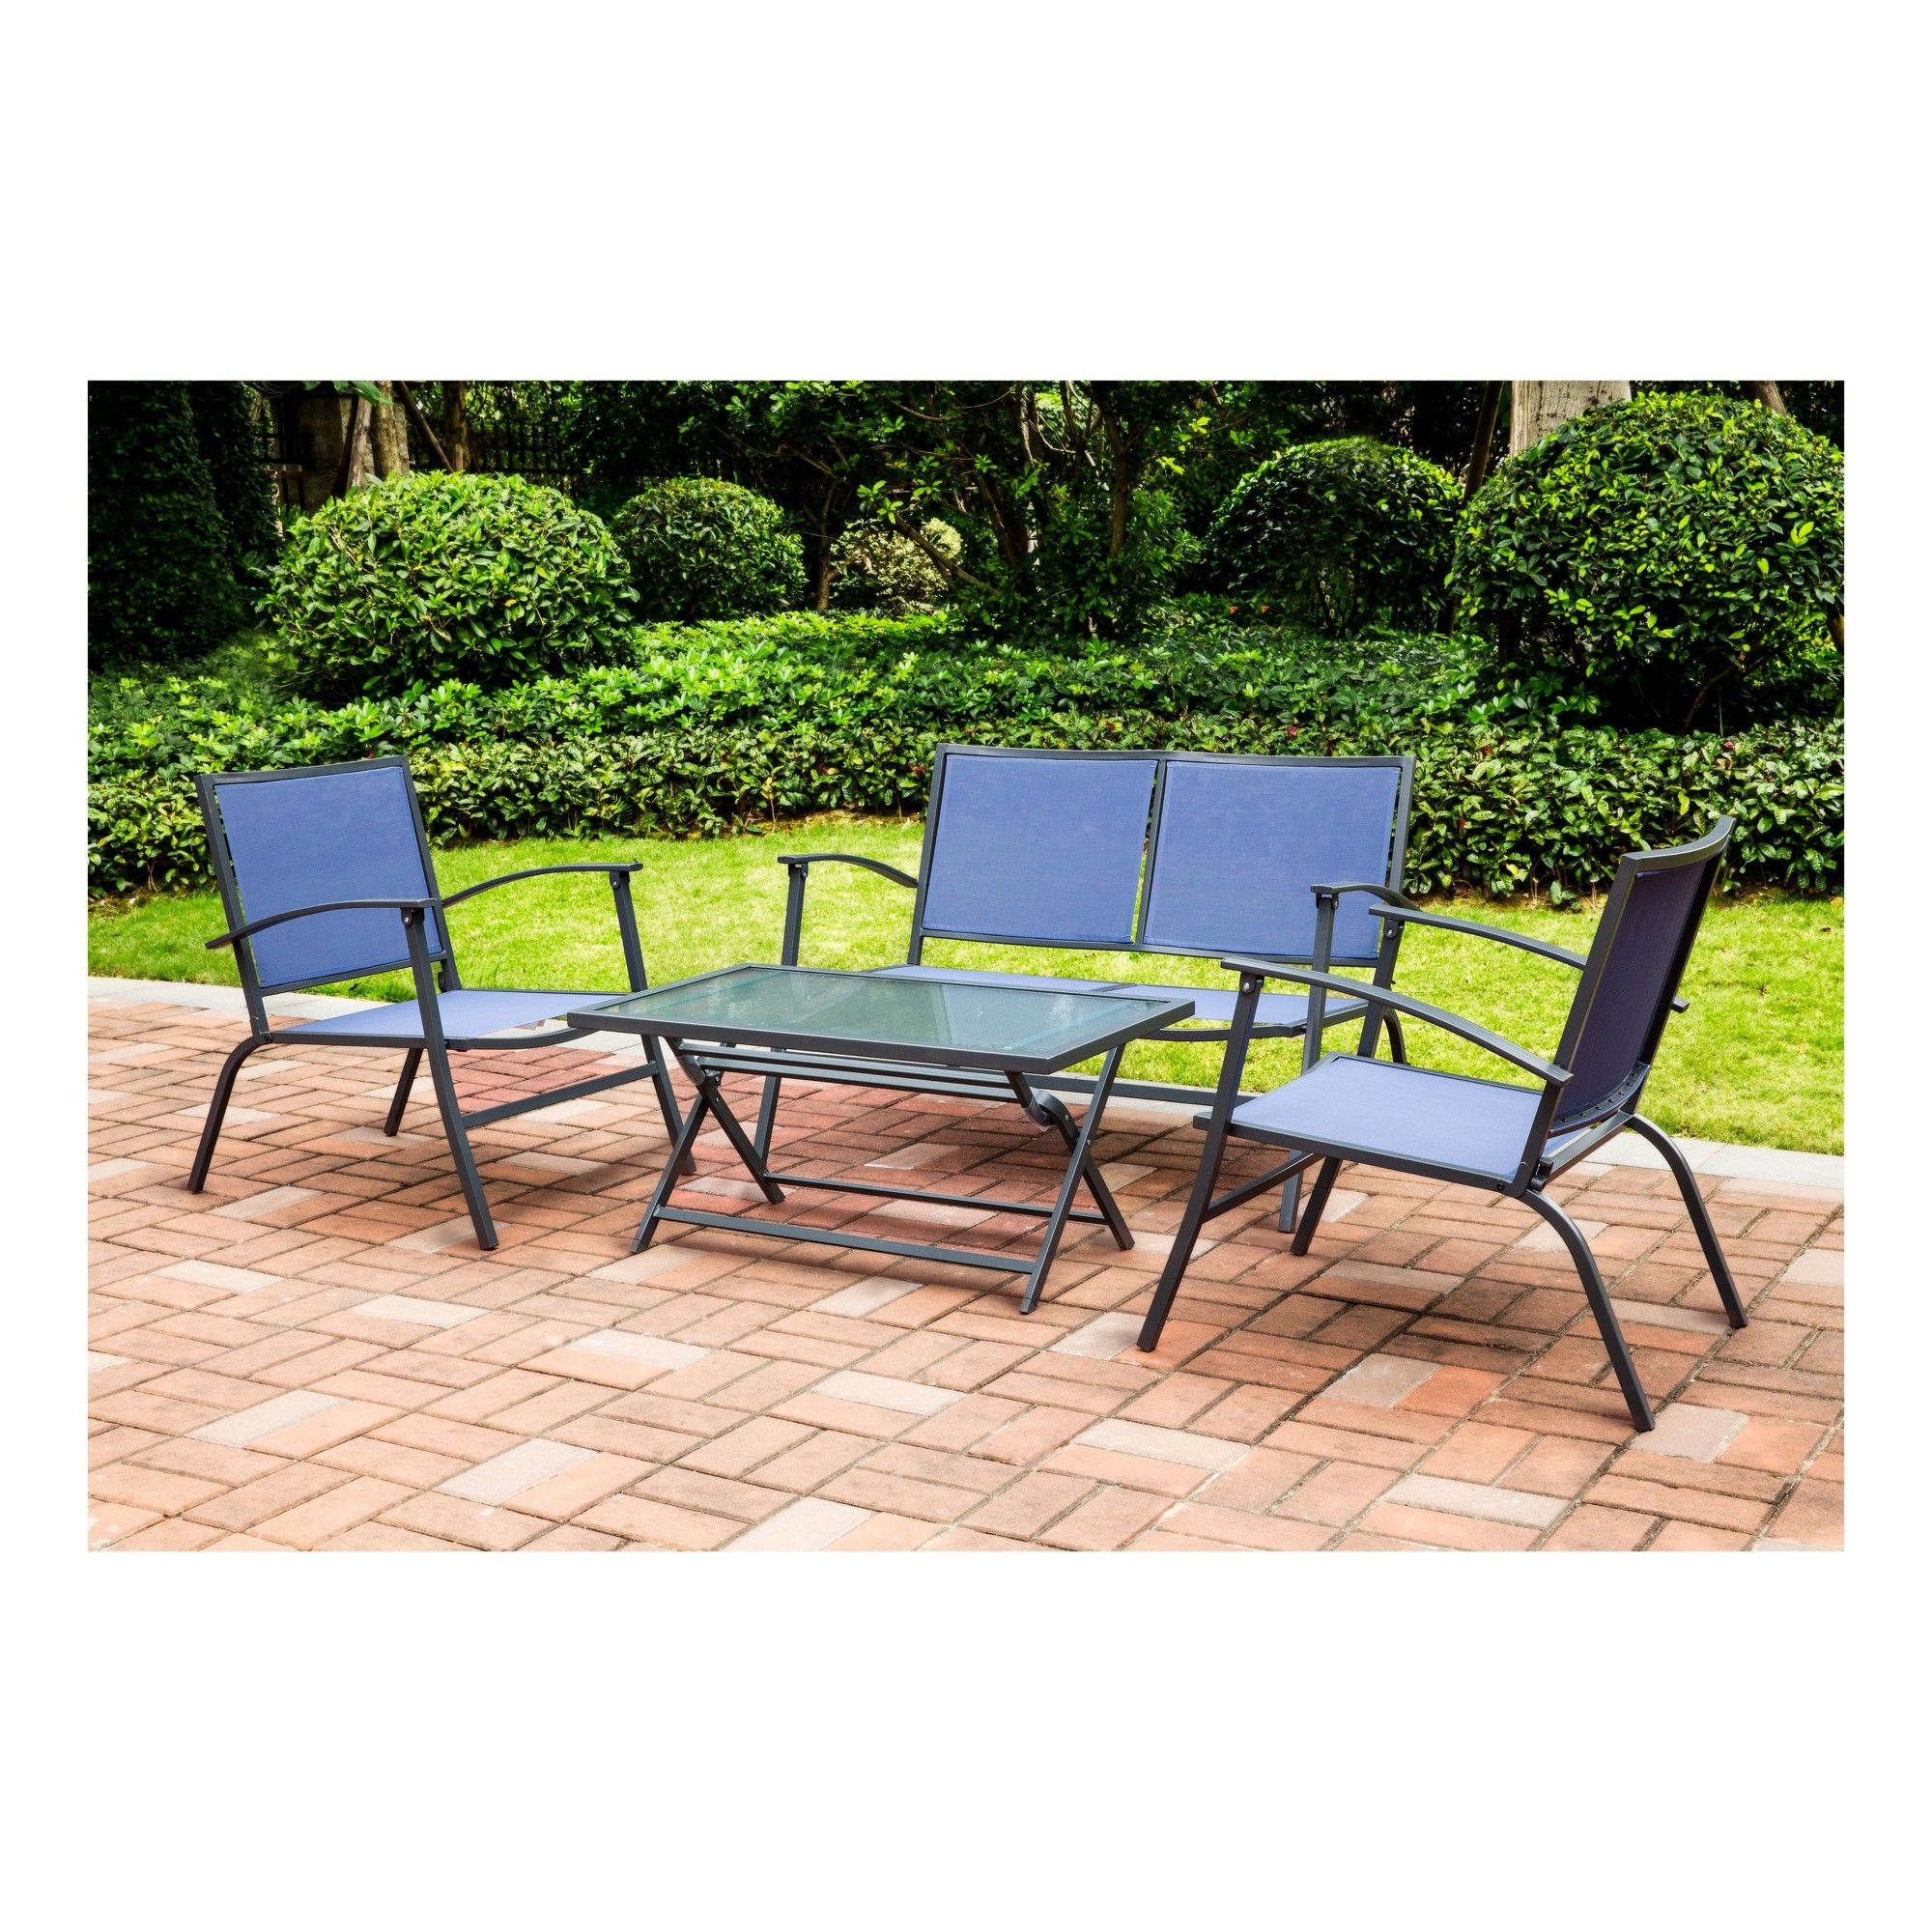 Strange 4Pc Sling Patio Dining Set Blue Threshold Products Download Free Architecture Designs Meptaeticmadebymaigaardcom